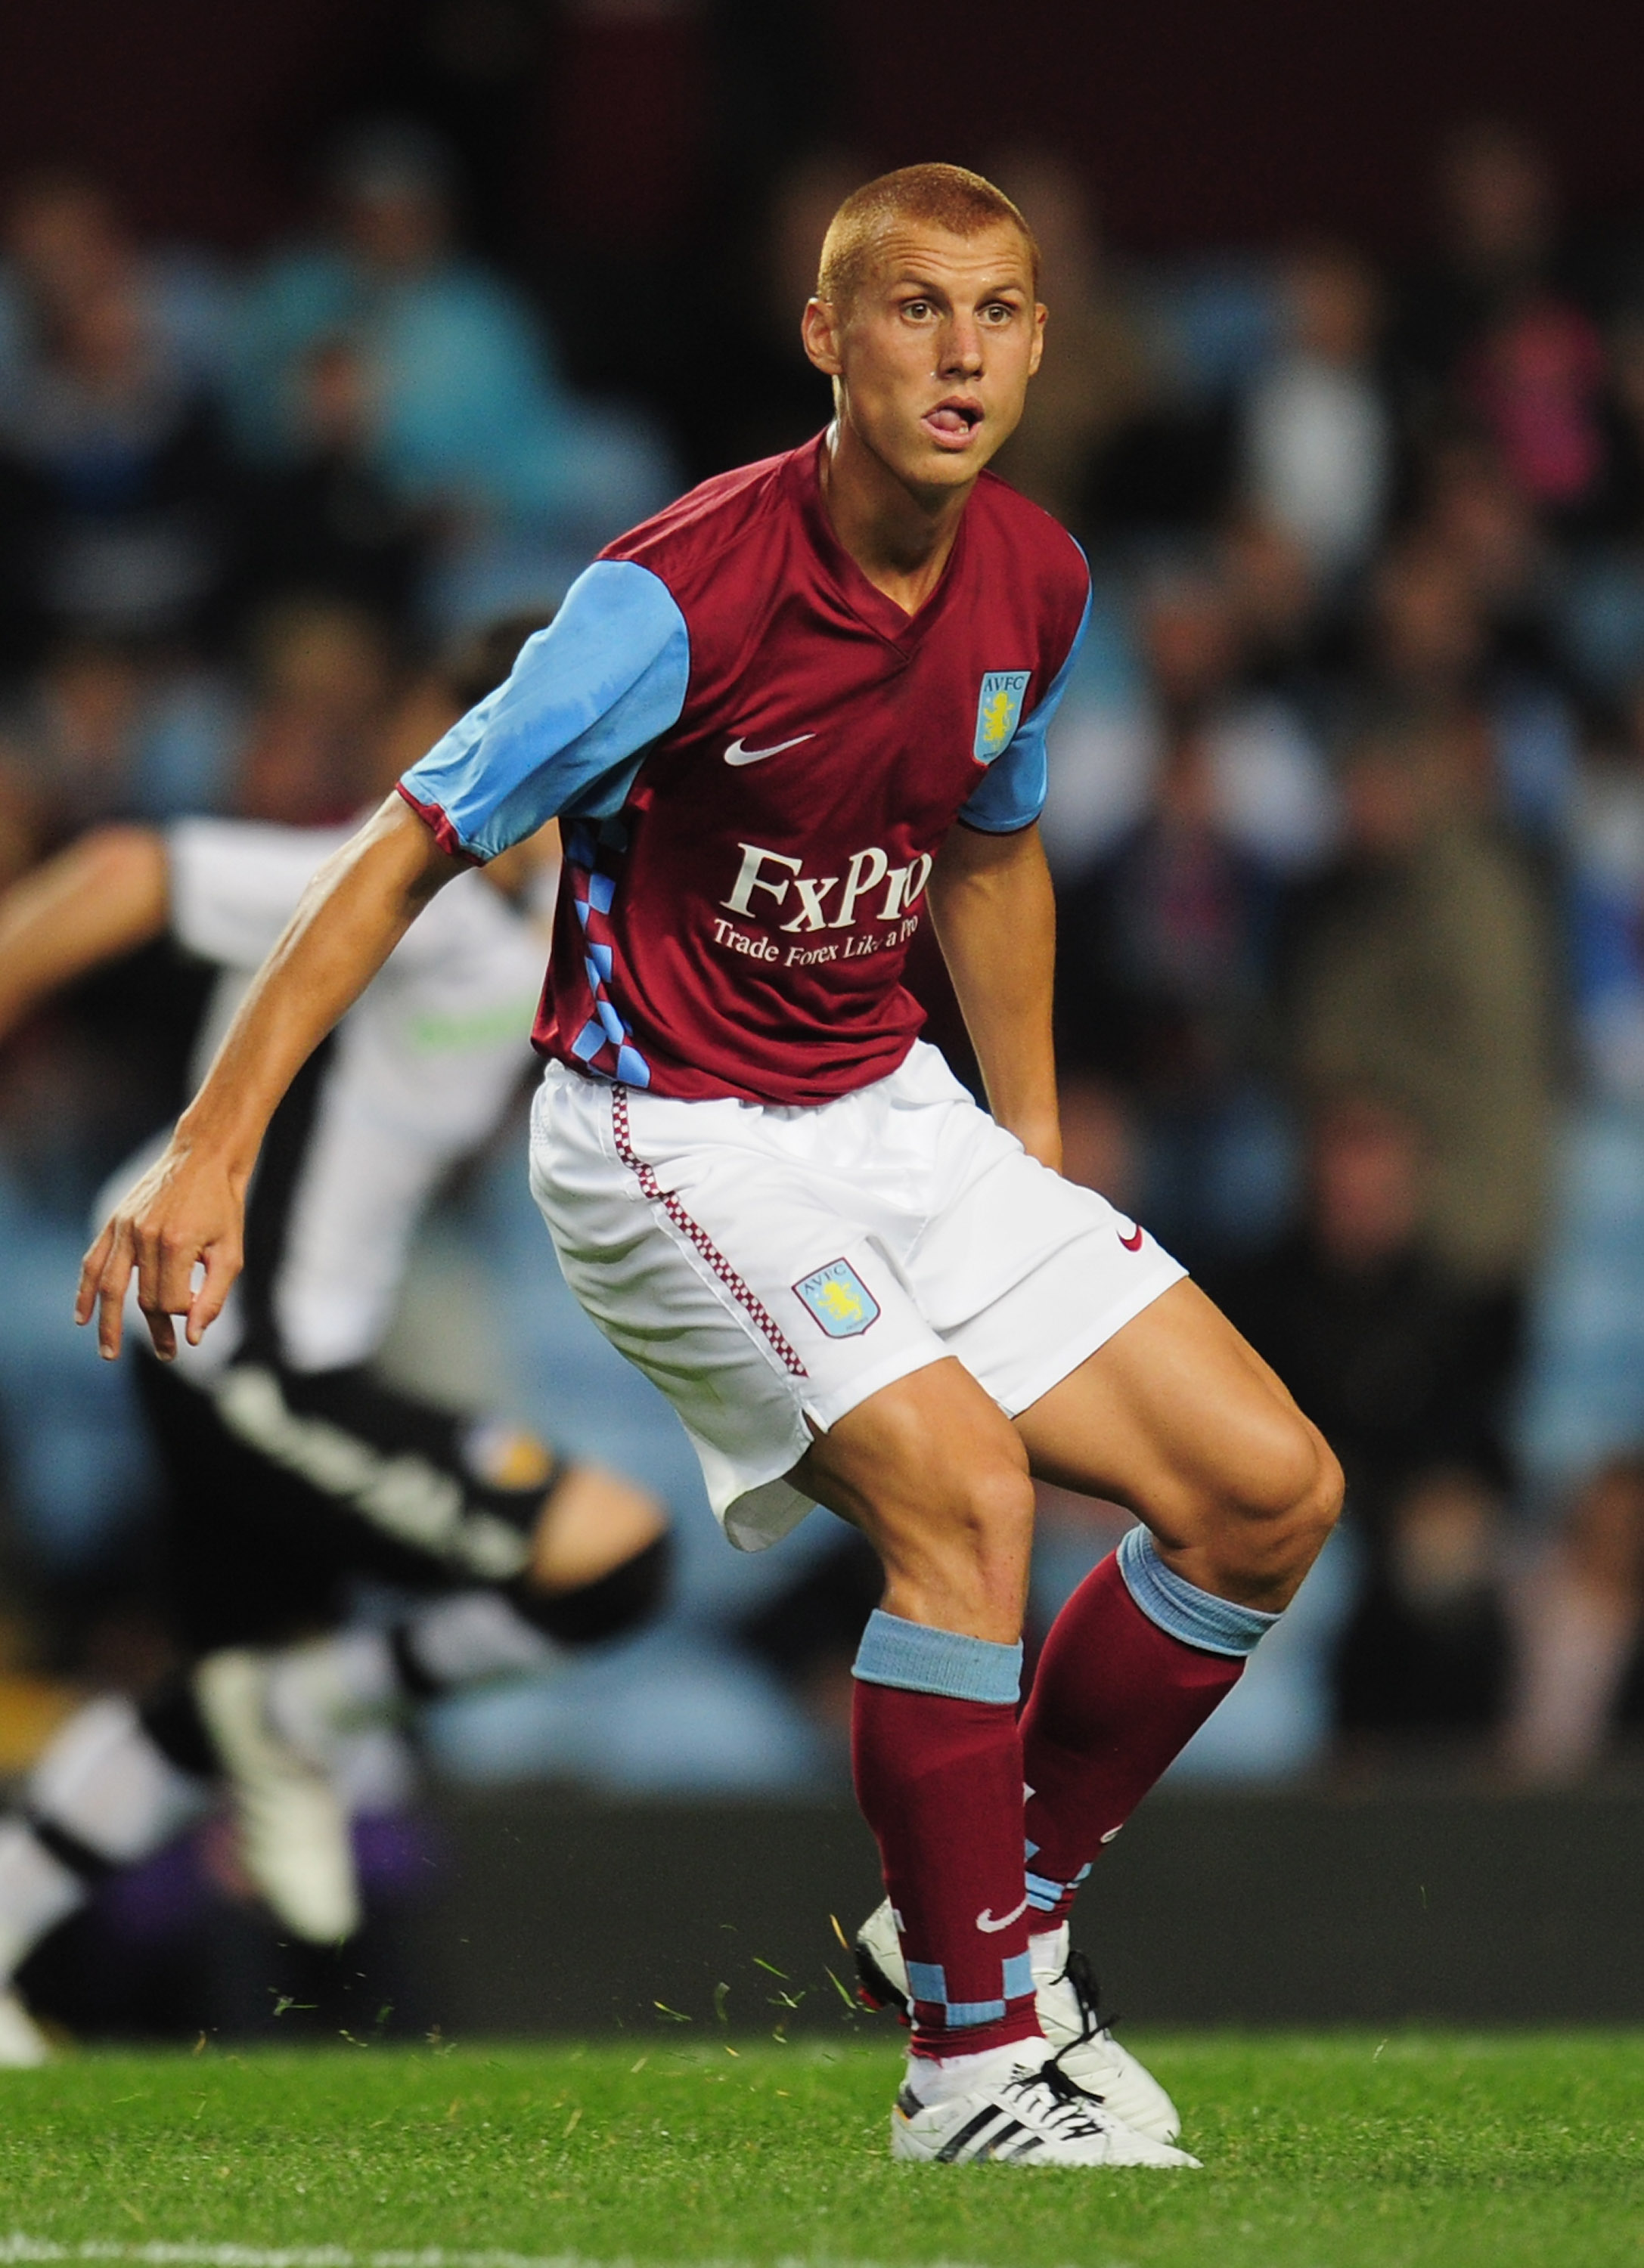 BIRMINGHAM, ENGLAND - AUGUST 06:  Steve Sidwell of Aston Villa in action during the friendly match between Aston Villa and Valencia at Villa Park on August 6, 2010 in Birmingham, England.  (Photo by Shaun Botterill/Getty Images)